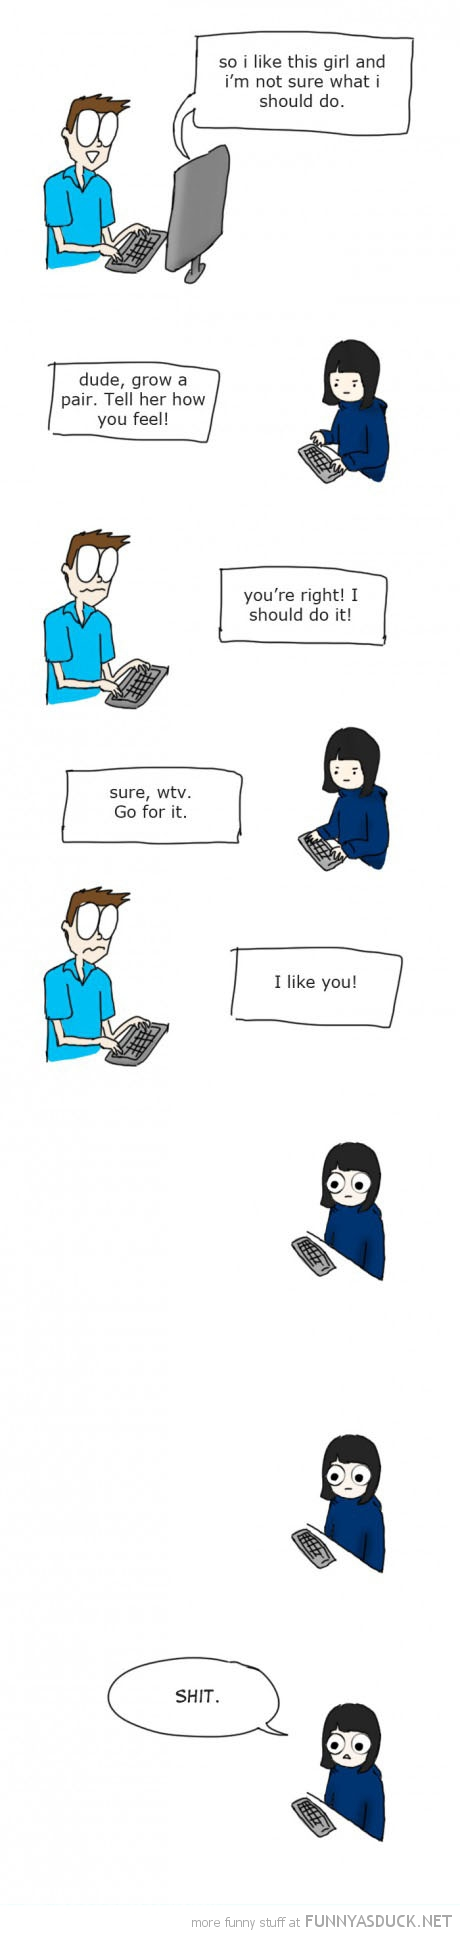 boy girl chatting computer comic grow pair tell her shit funny pics pictures pic picture image photo images photos lol